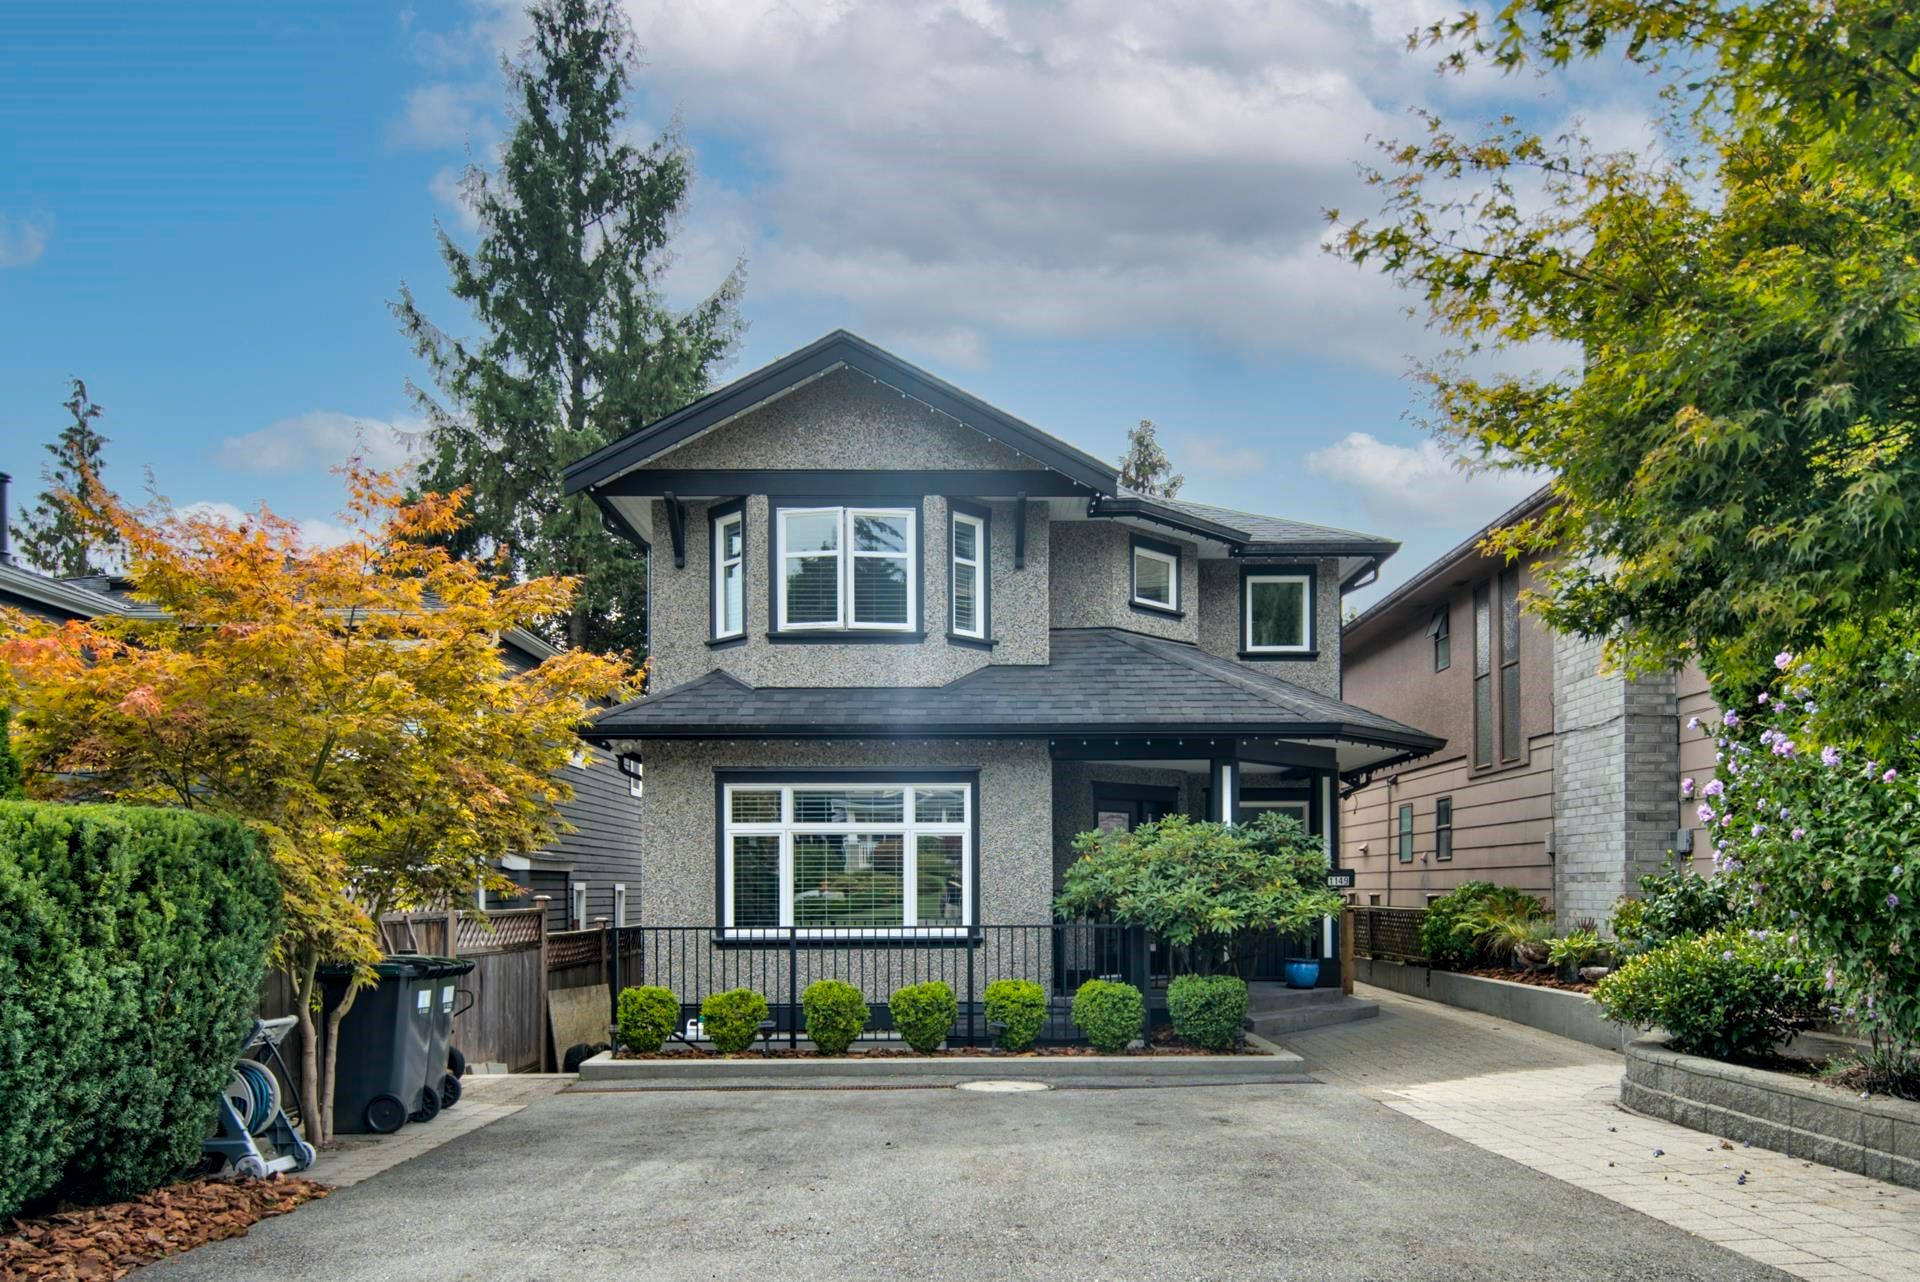 Main Photo: 1149 RONAYNE Road in North Vancouver: Lynn Valley House for sale : MLS®# R2617535